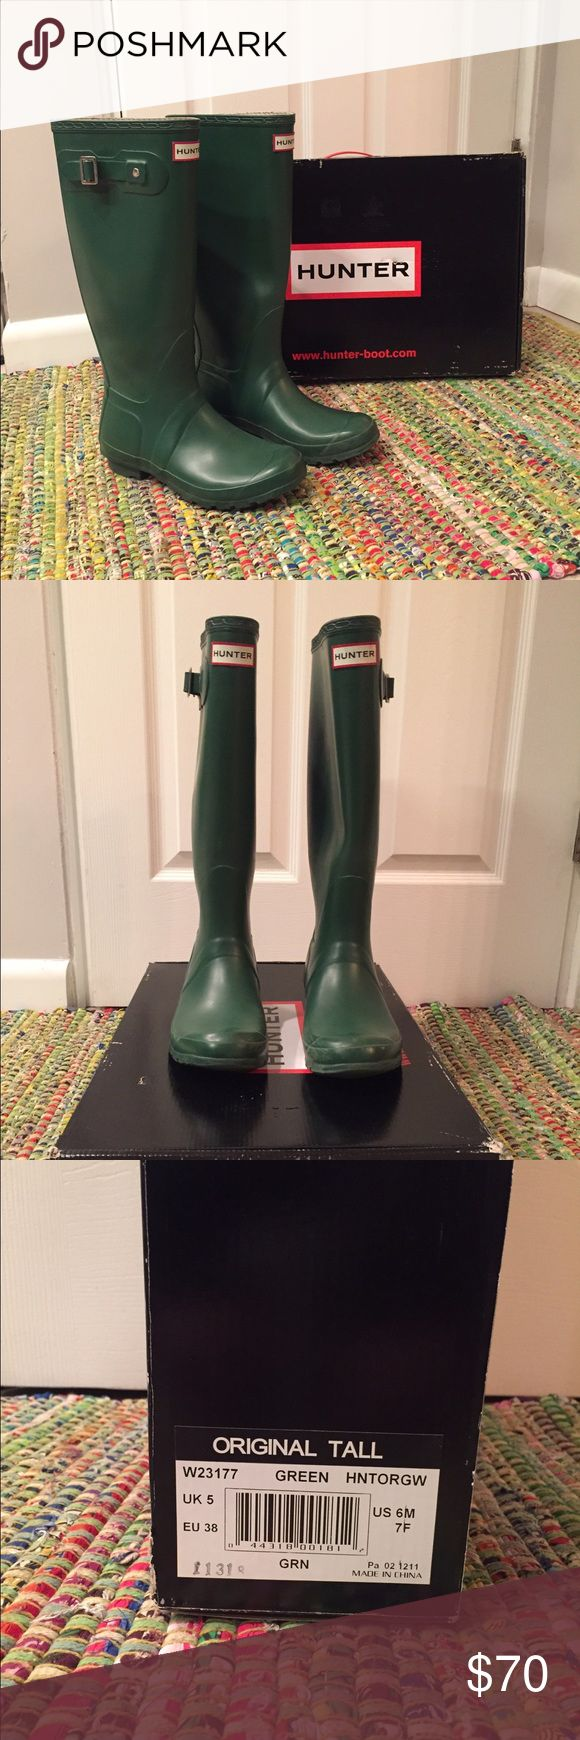 Women's Hunter Boots Size 7 Tall Green Hunter Boots. Size 7. Worn but still in good condition! There is a small scuff on the inside as pictured Hunter Boots Shoes Winter & Rain Boots